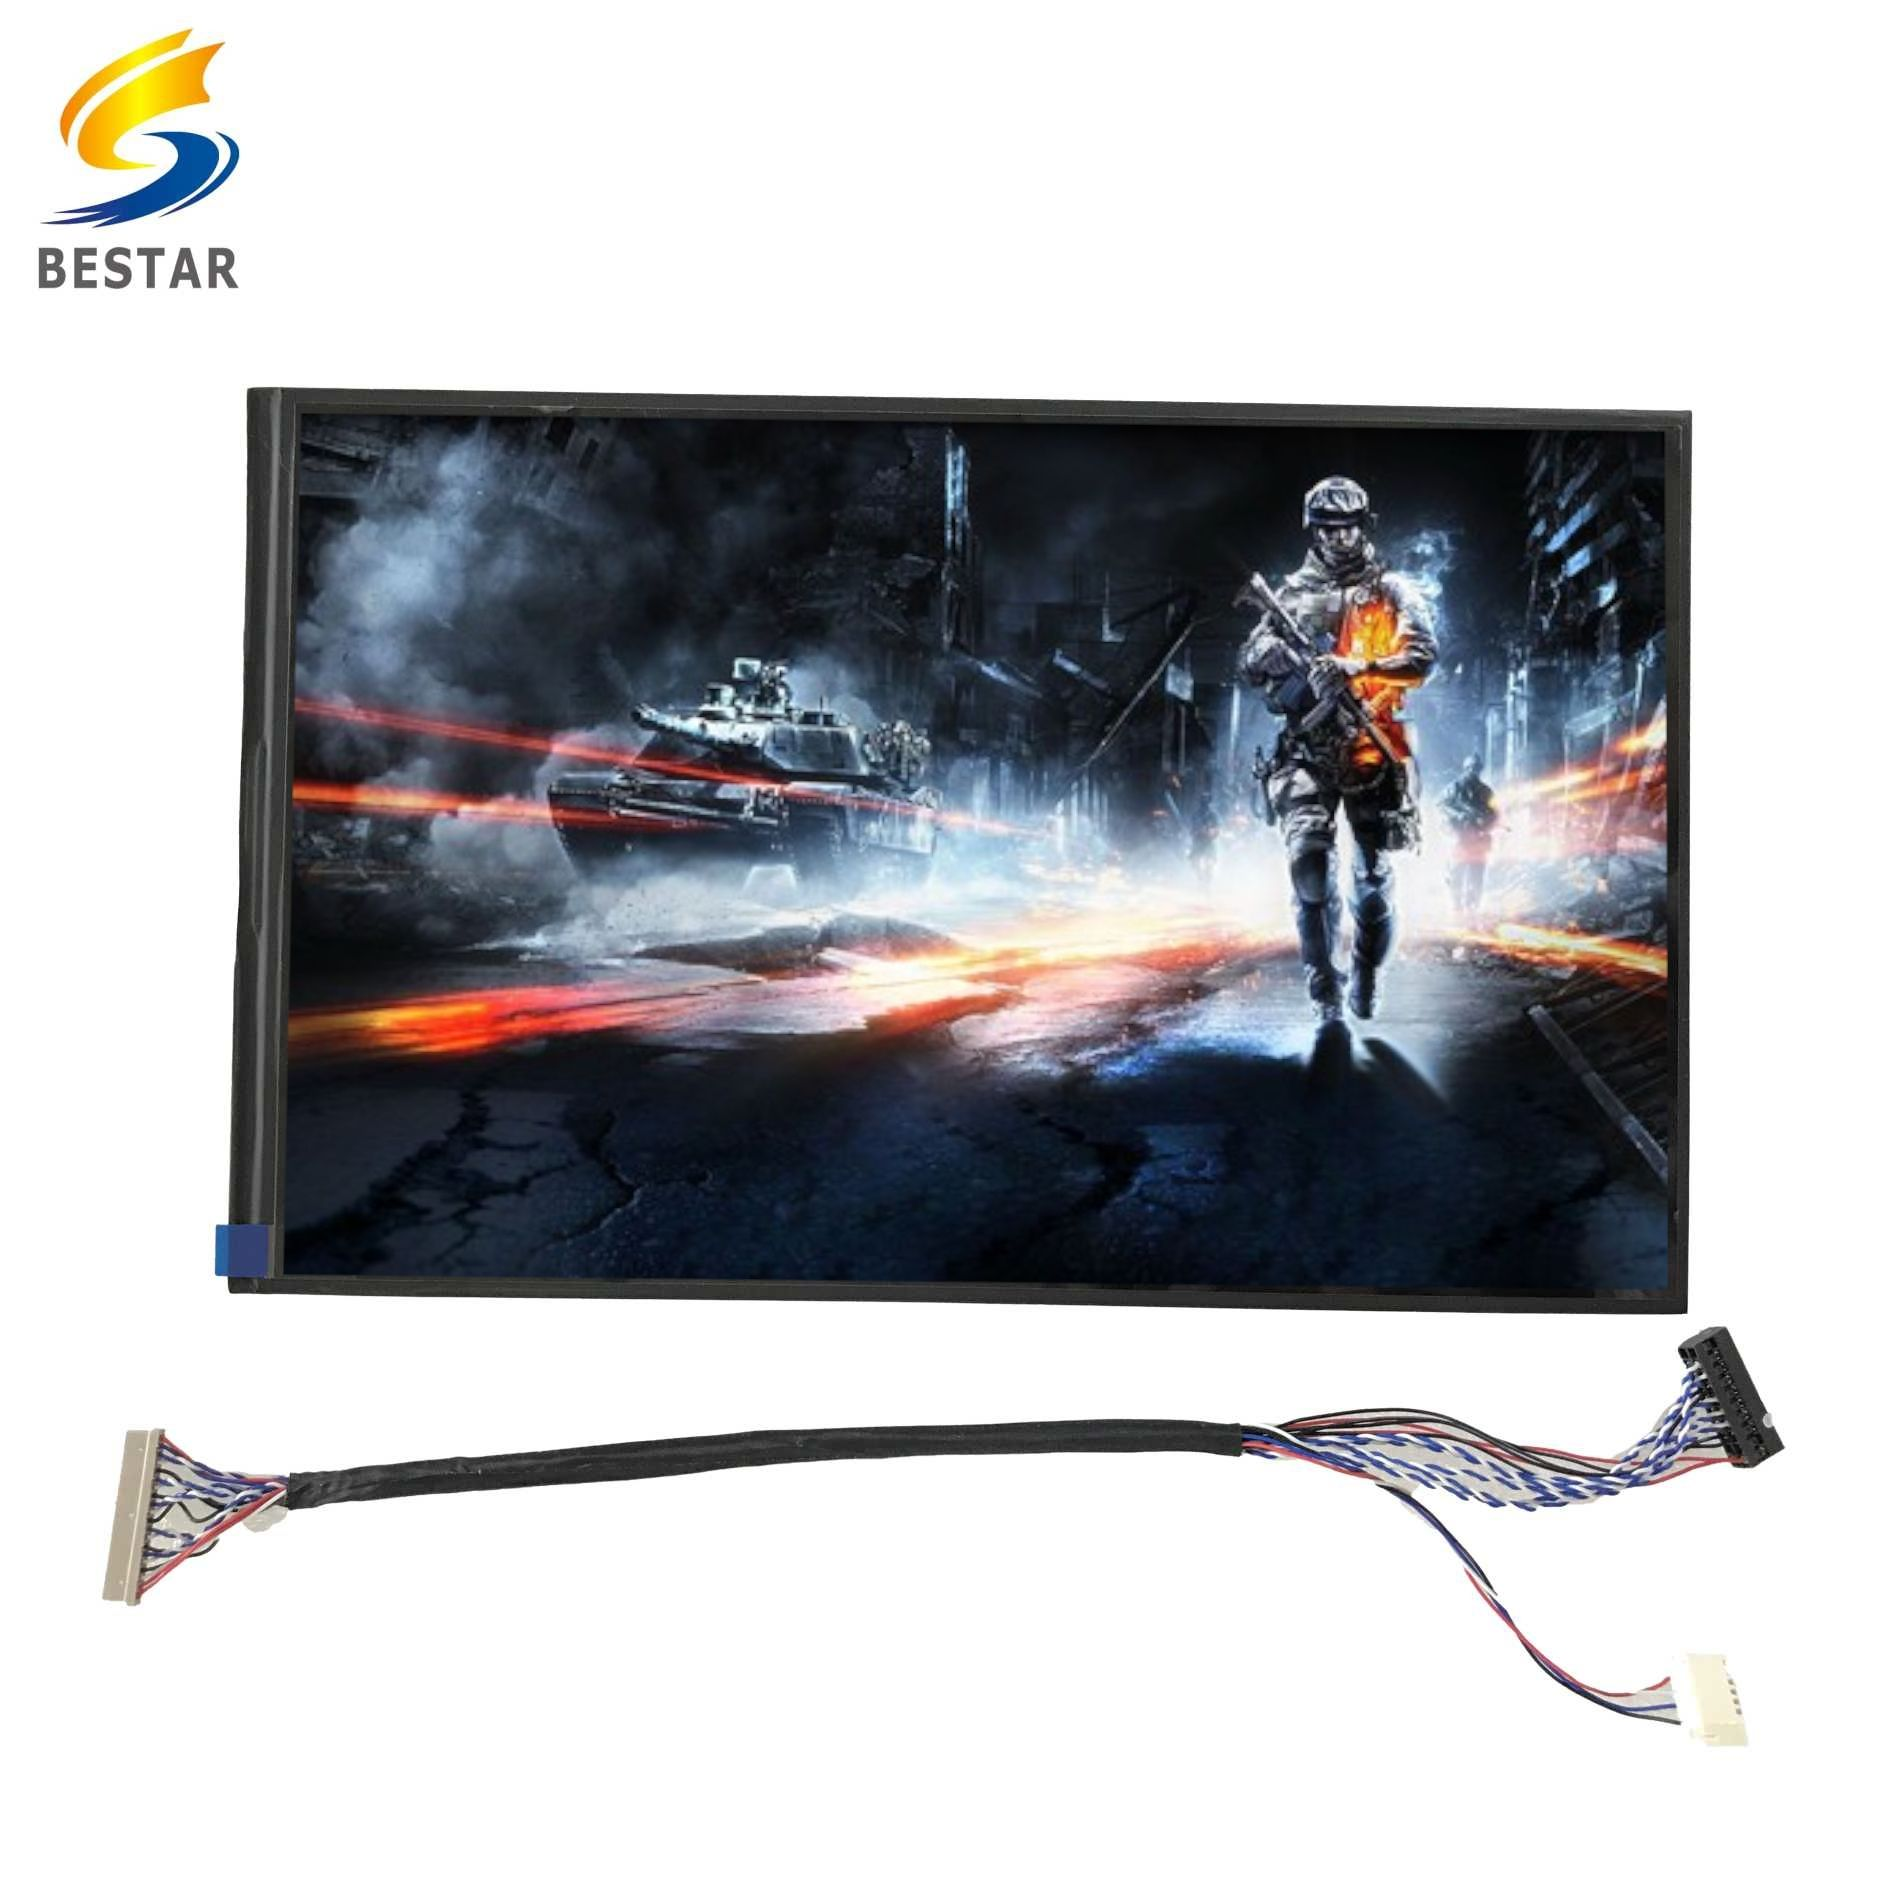 Hot selling display electronic components LCD 10.1 inch screen panels